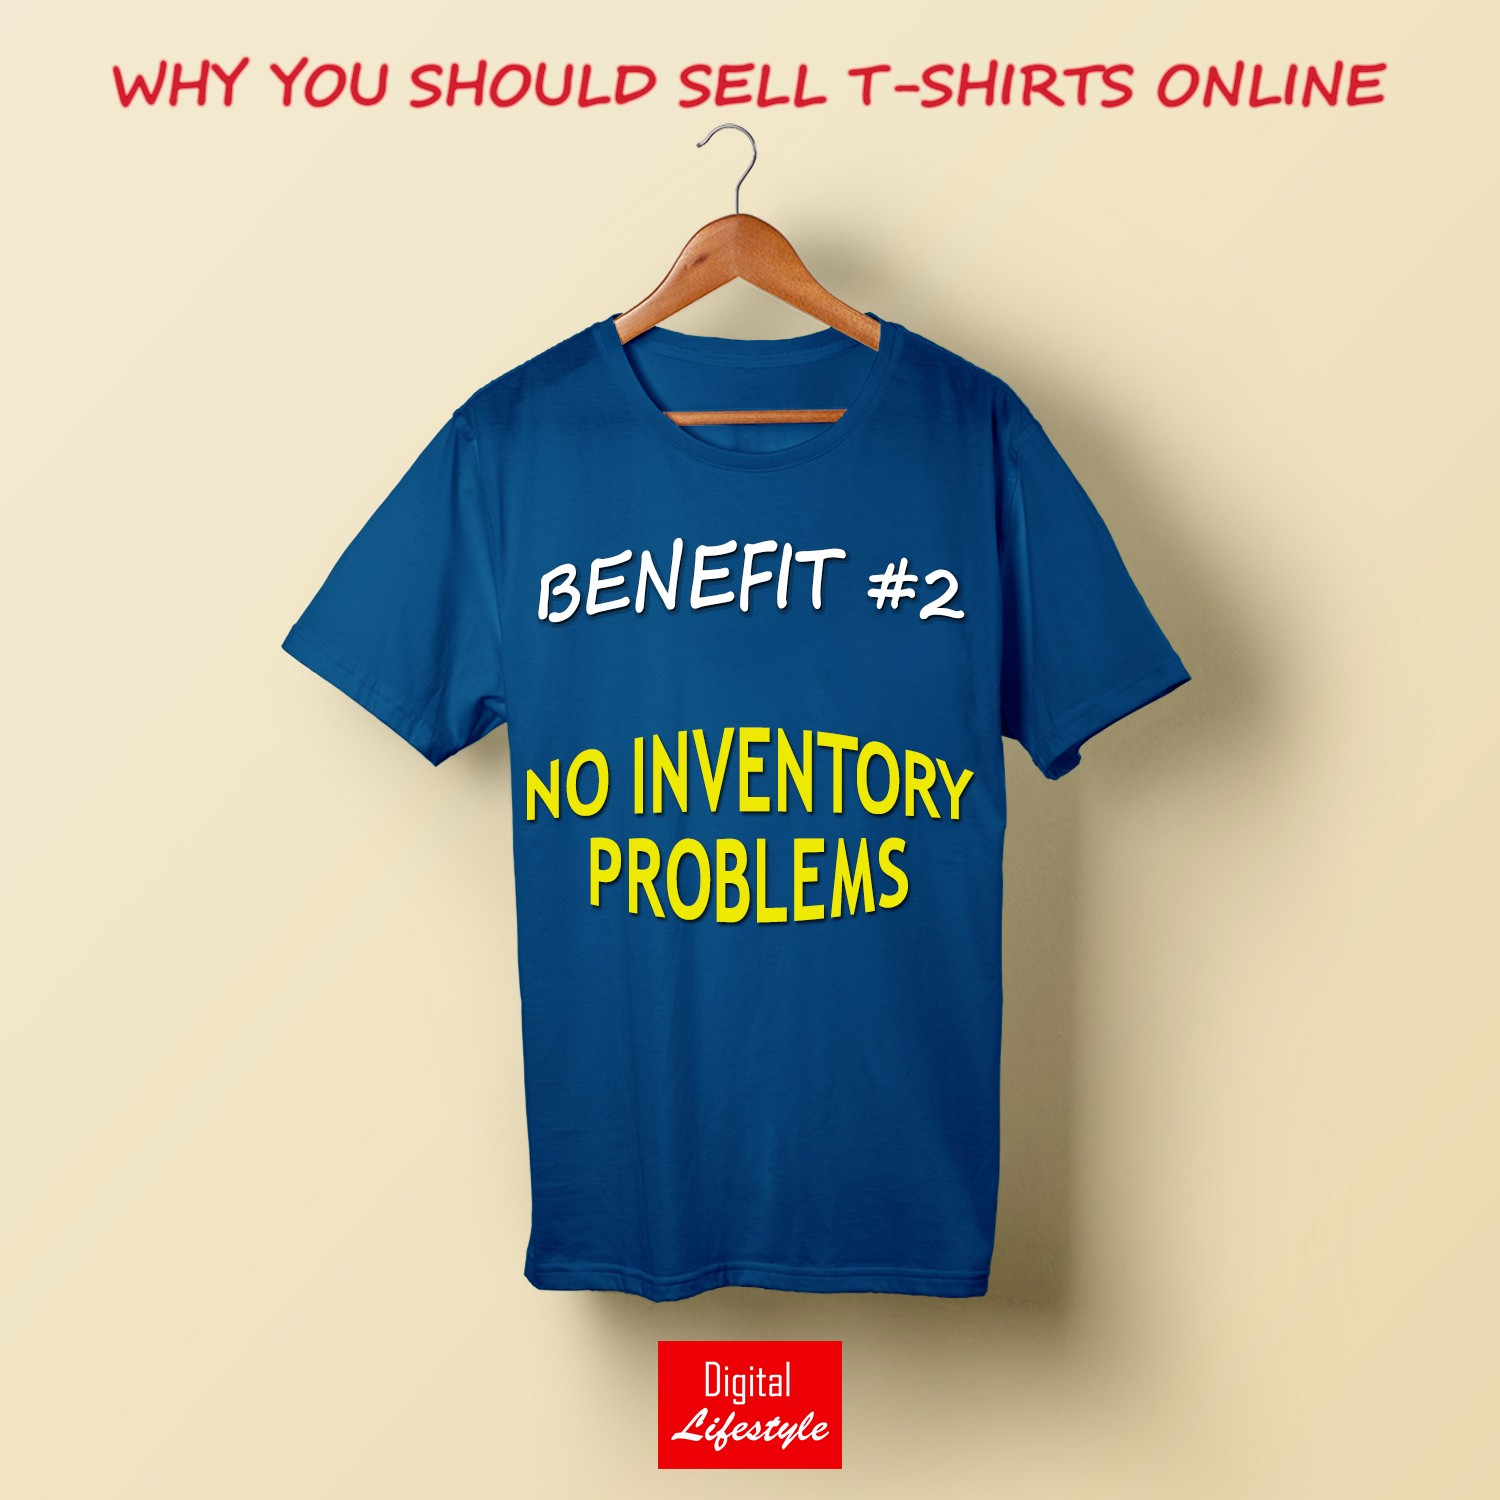 sell t-shirts